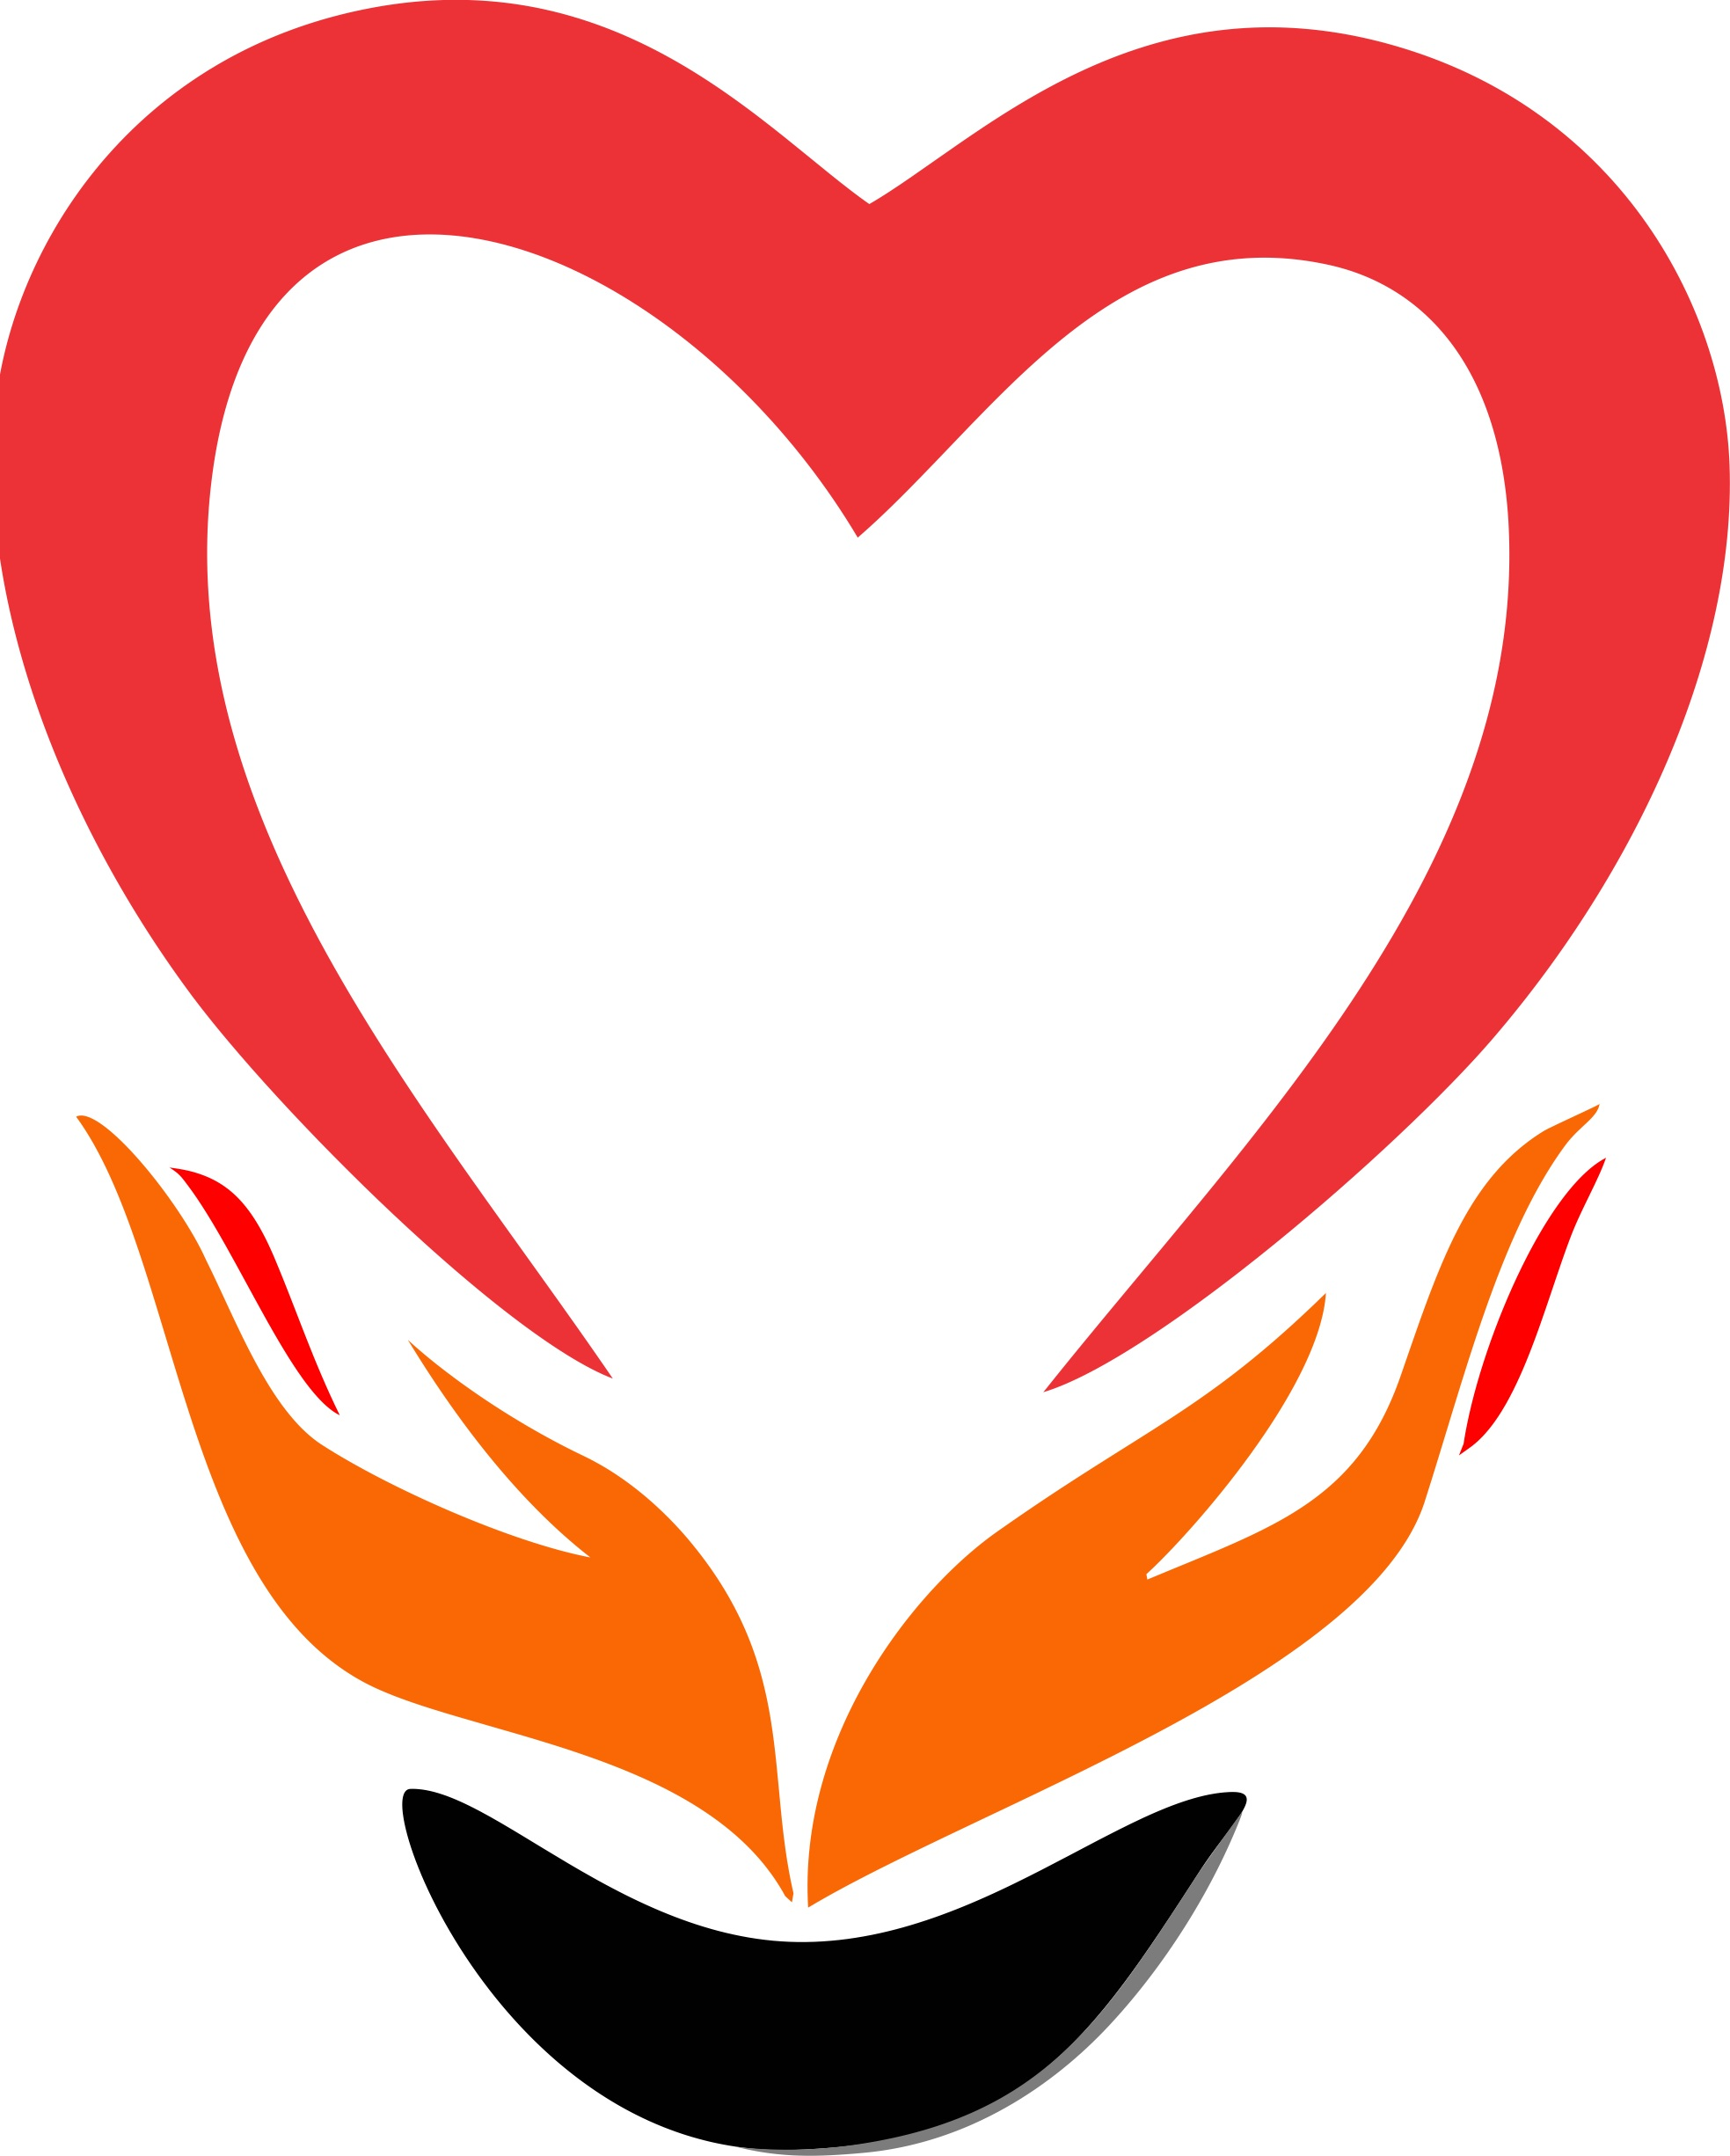 logo_voluntariado